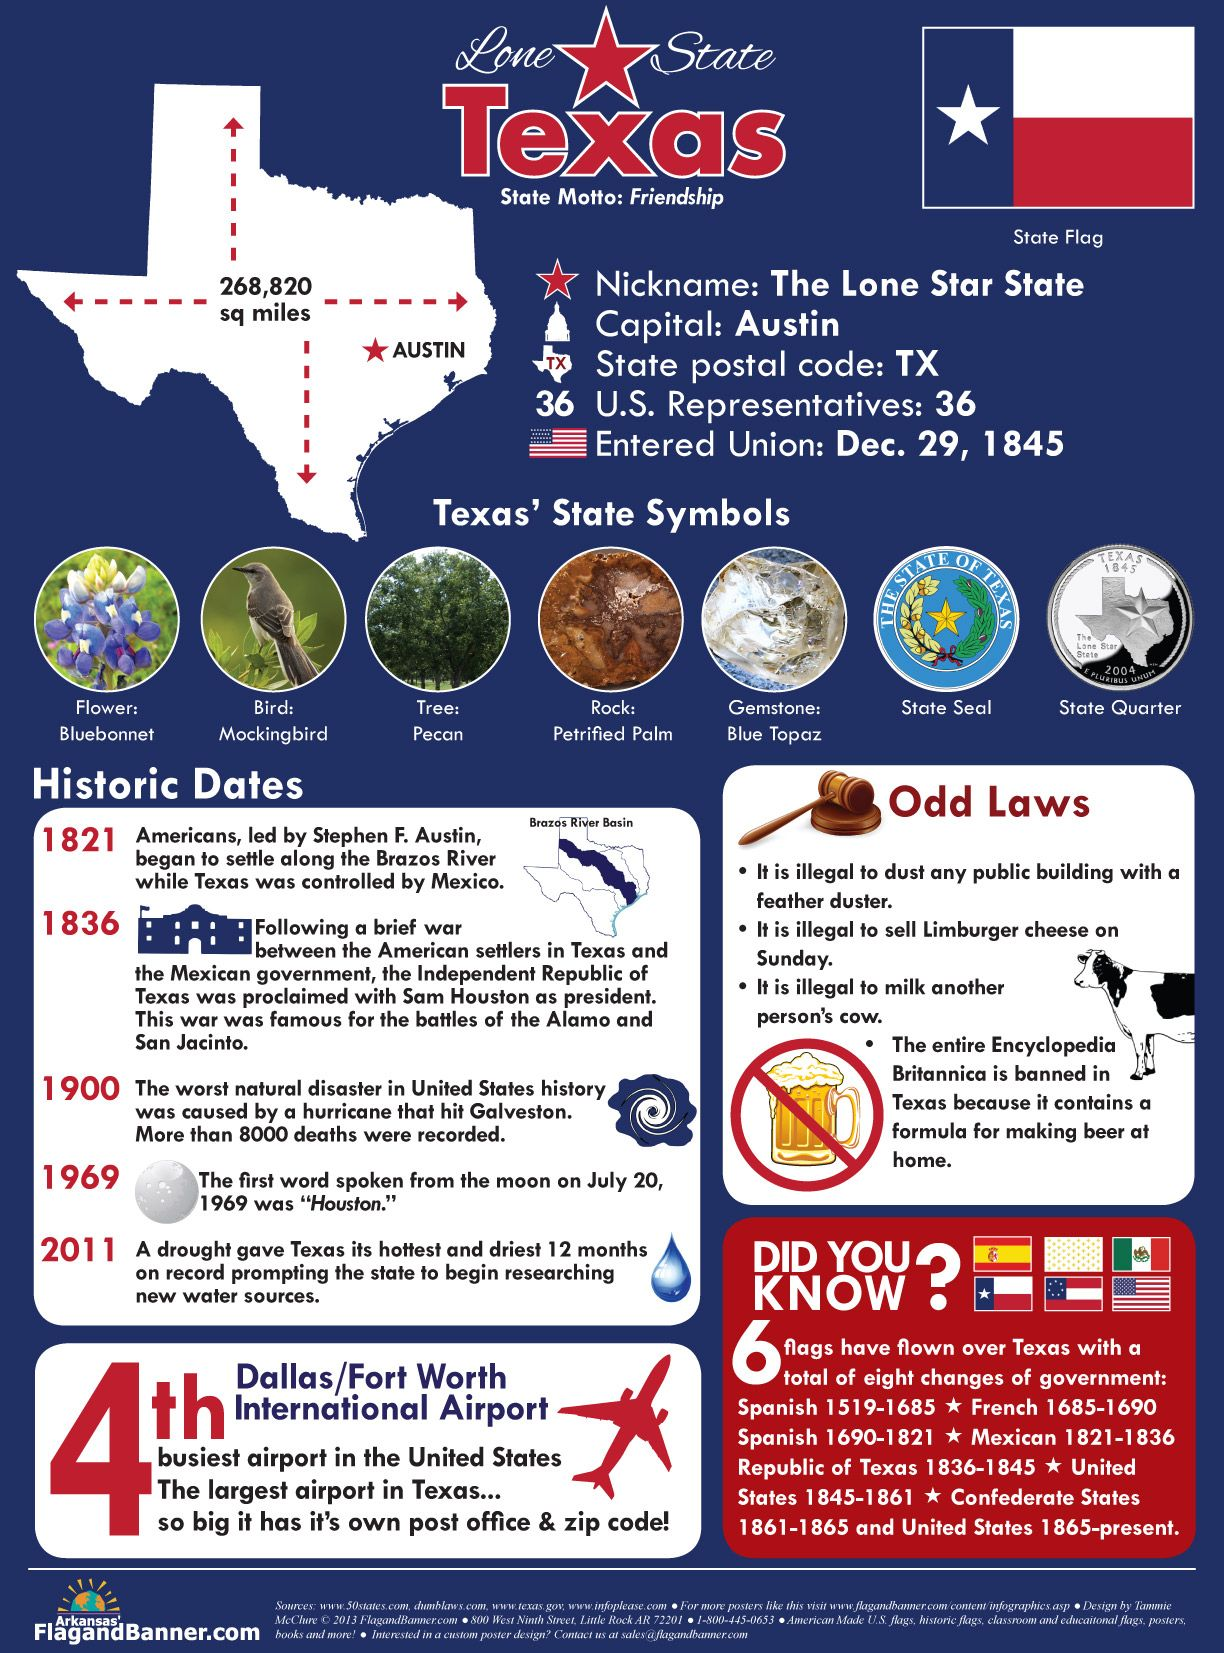 Infographic With Lots Of Information About The Lone Star State And